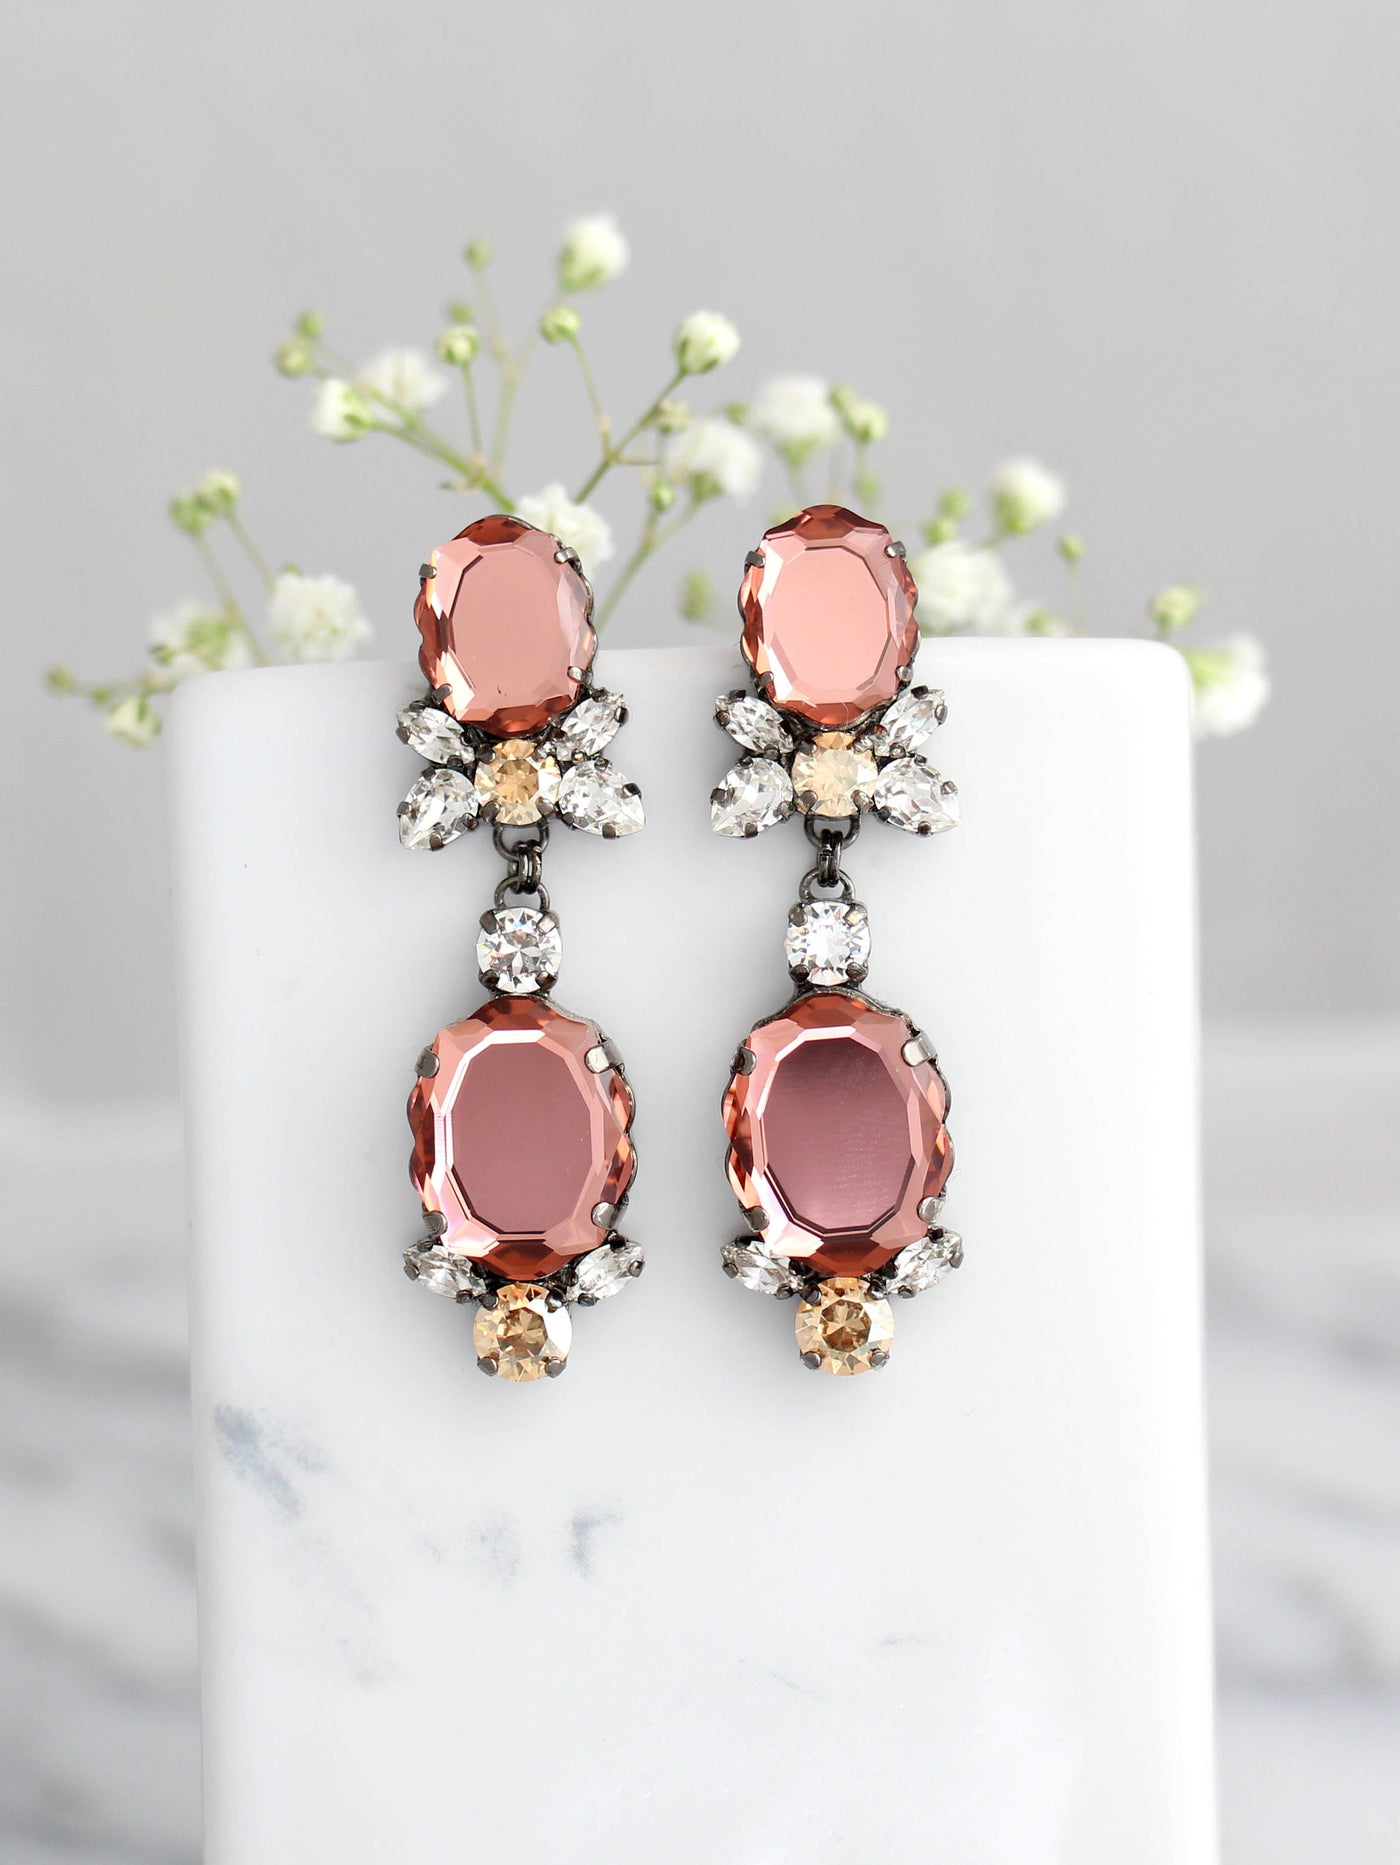 Baroque Bridal Blush Rose Crystal Swarovski Chandelier Earrings